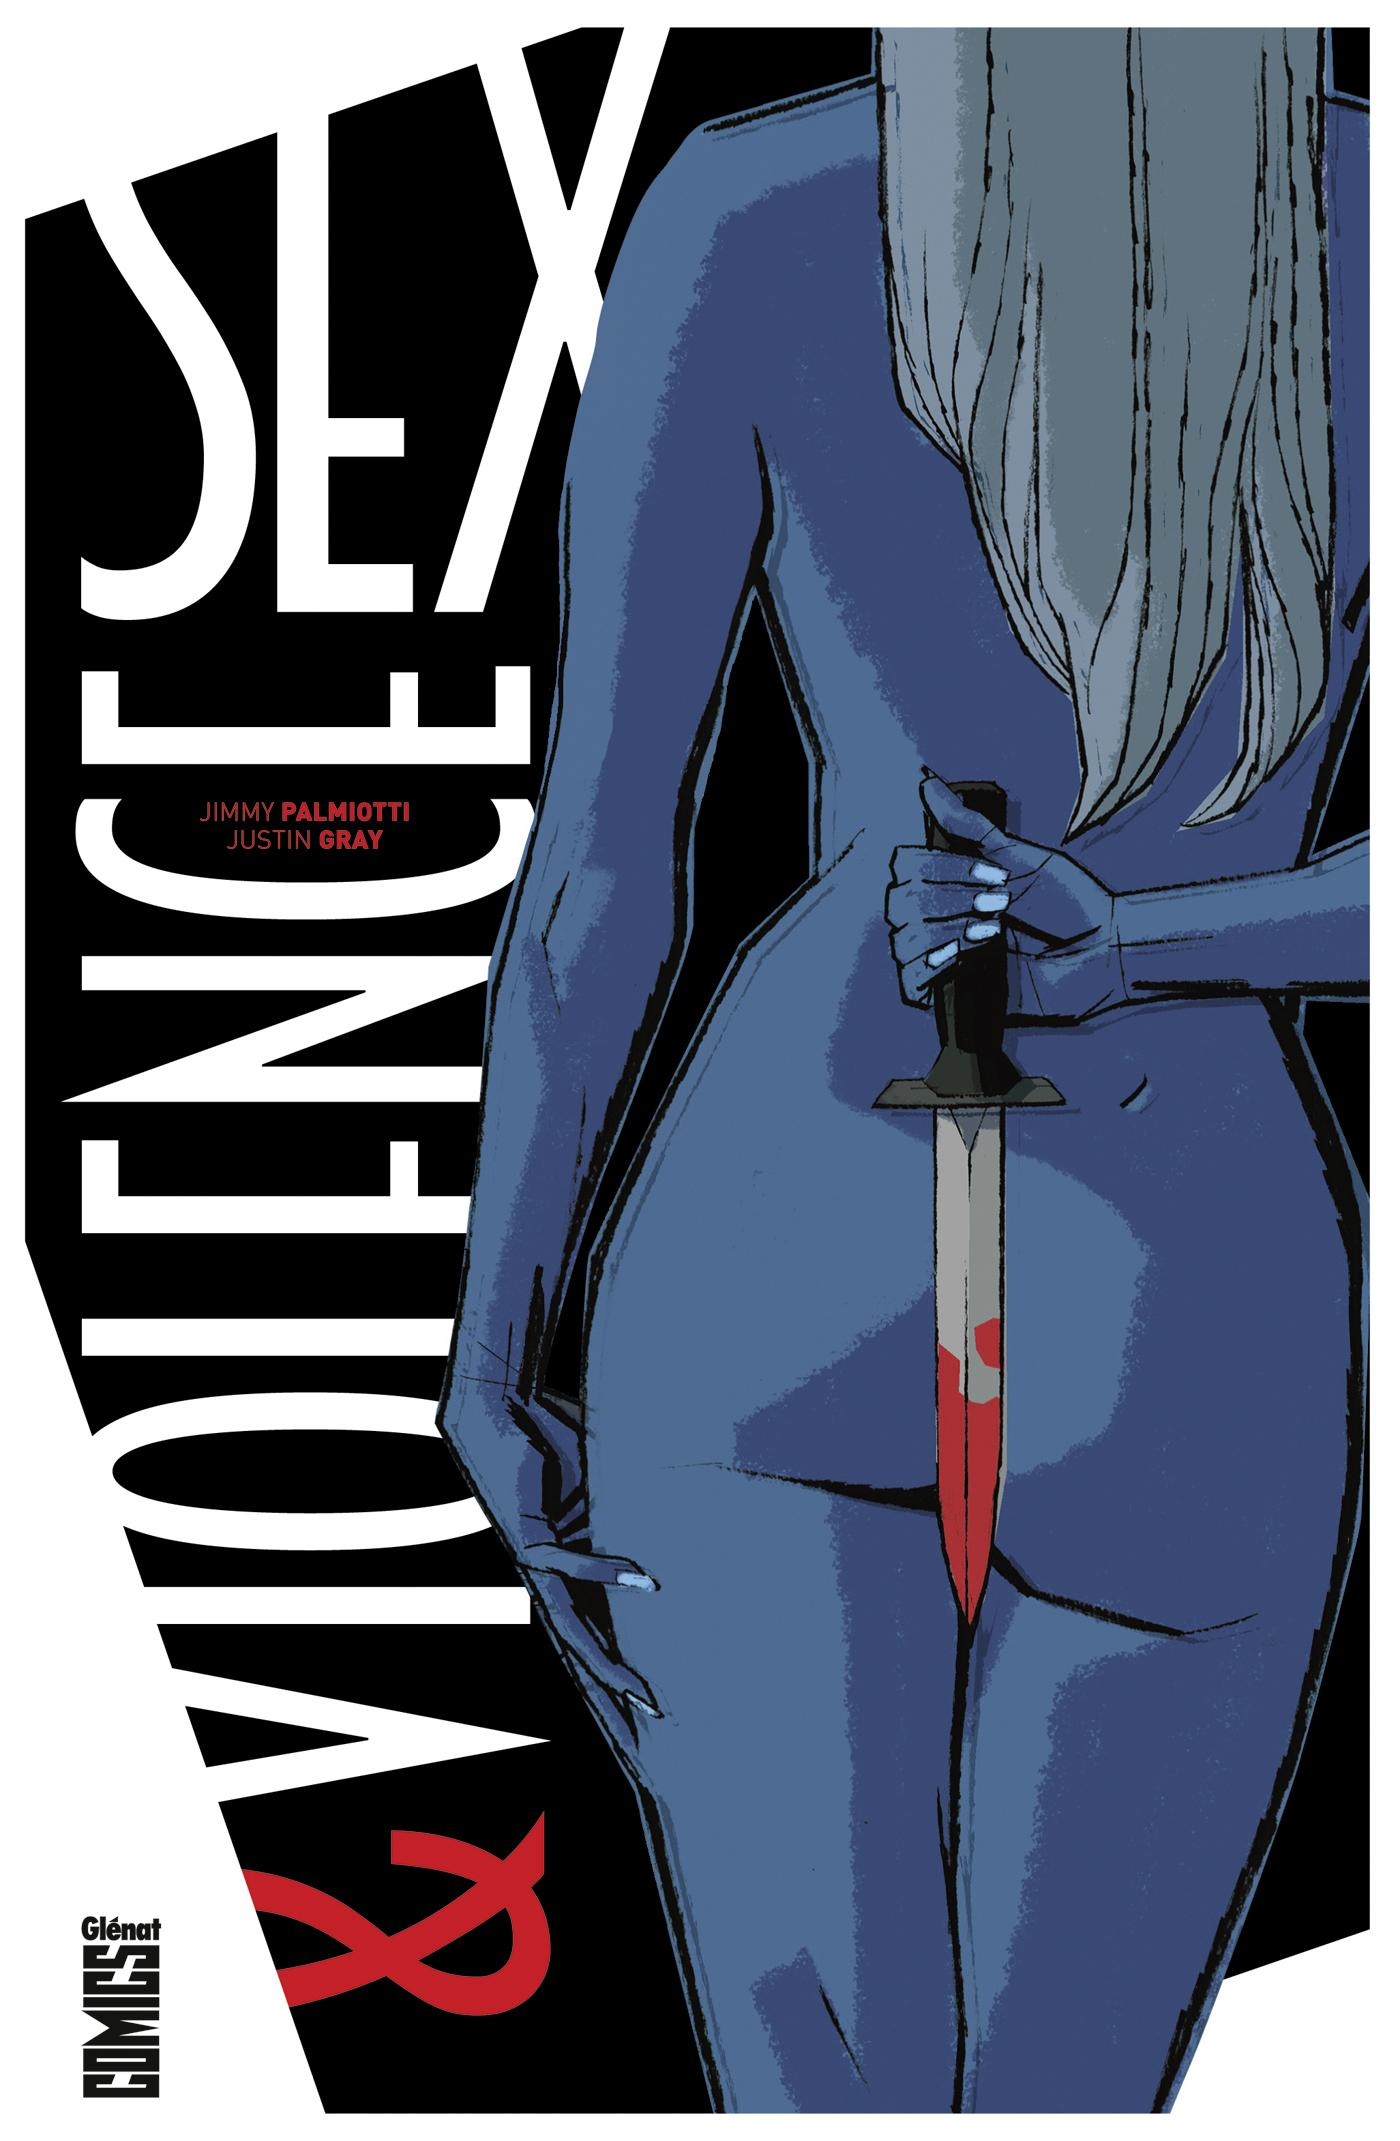 Vente Livre :                                    Sex & violence                                      - Collectif  - Justin Gray  - Jimmy Palmiotti